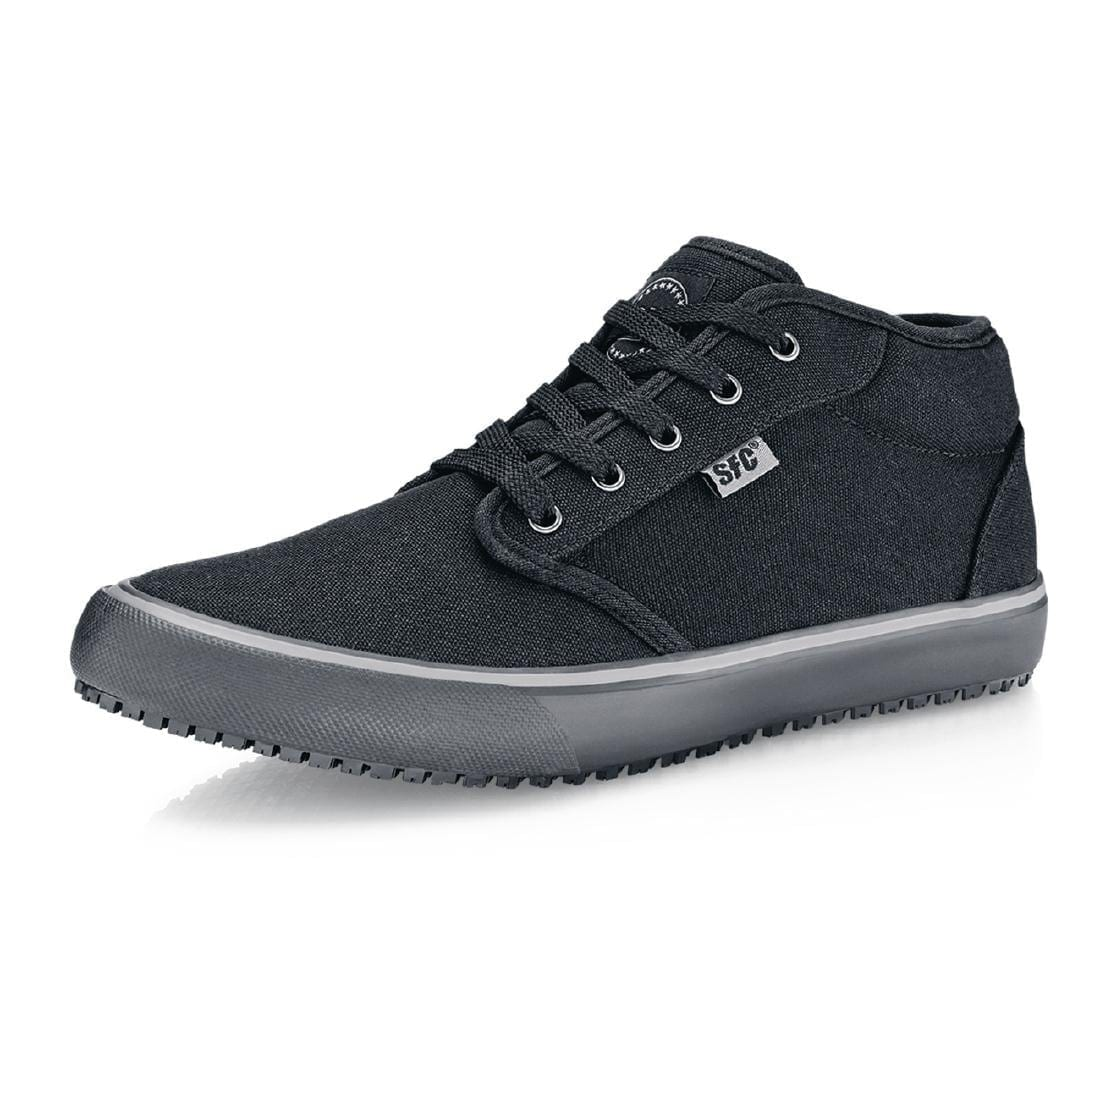 Shoes For Crews Coated Canvas Lace up Boot - Size 43-0